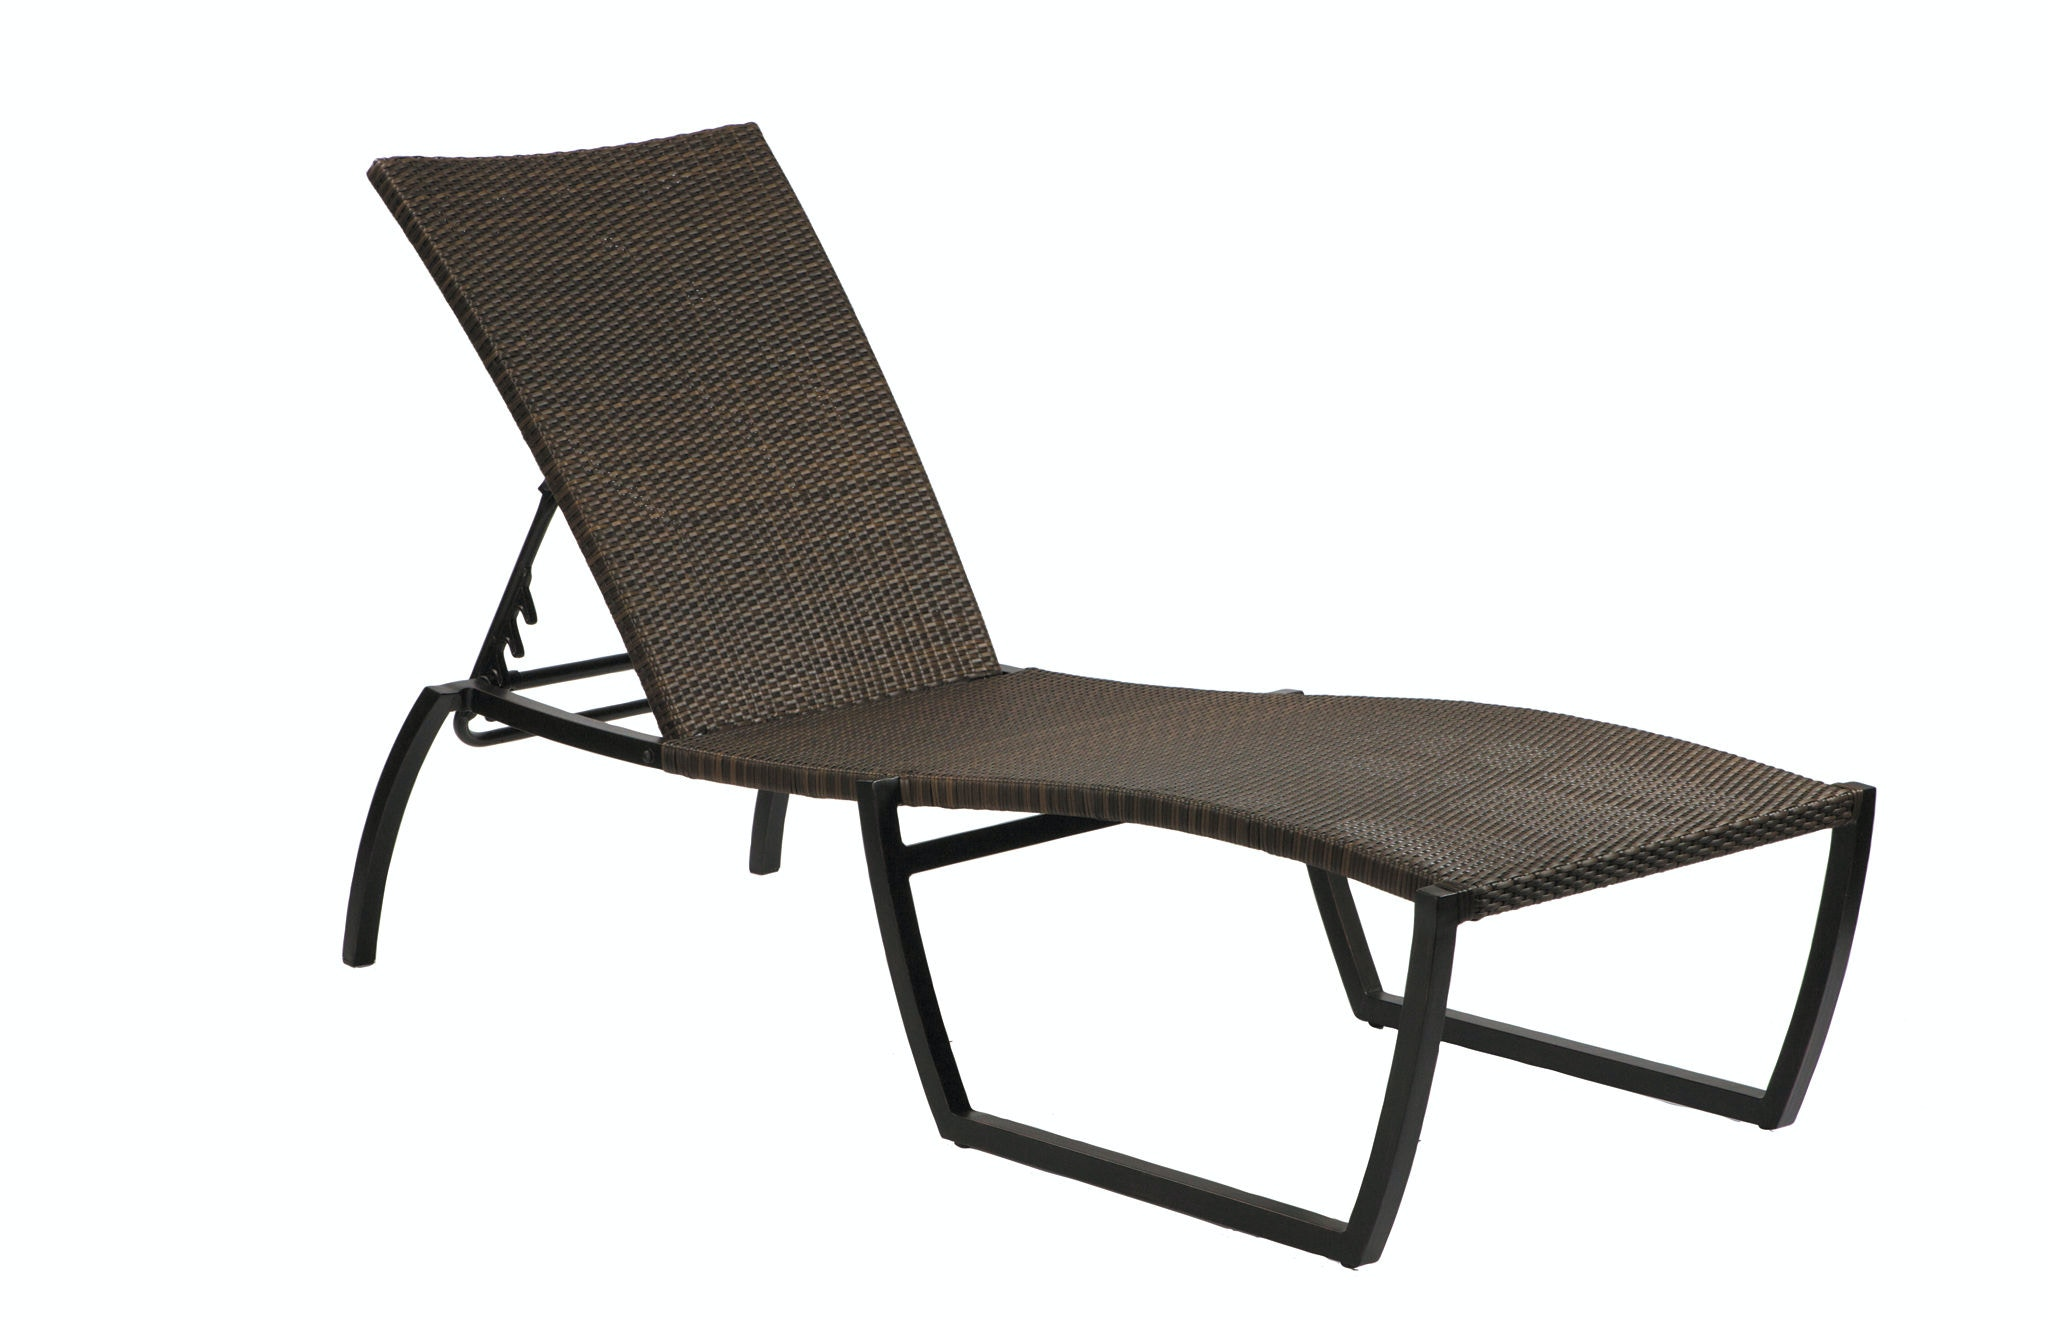 summer chaise lounge chairs ameriglide lift chair classics outdoor patio skye 35832